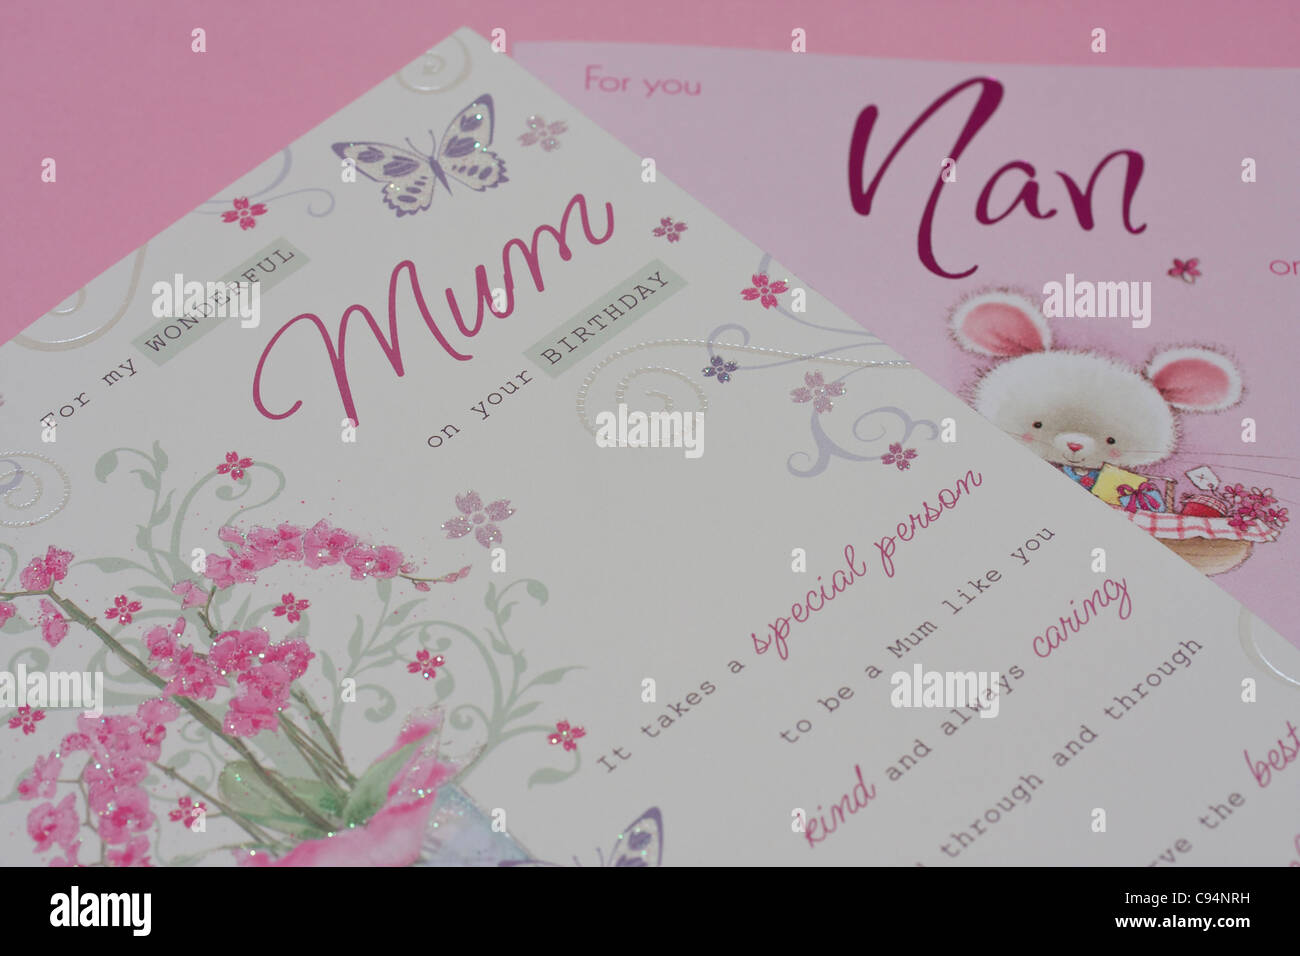 Birthday Cards On Pink Background For Mum And Nan Focus Word